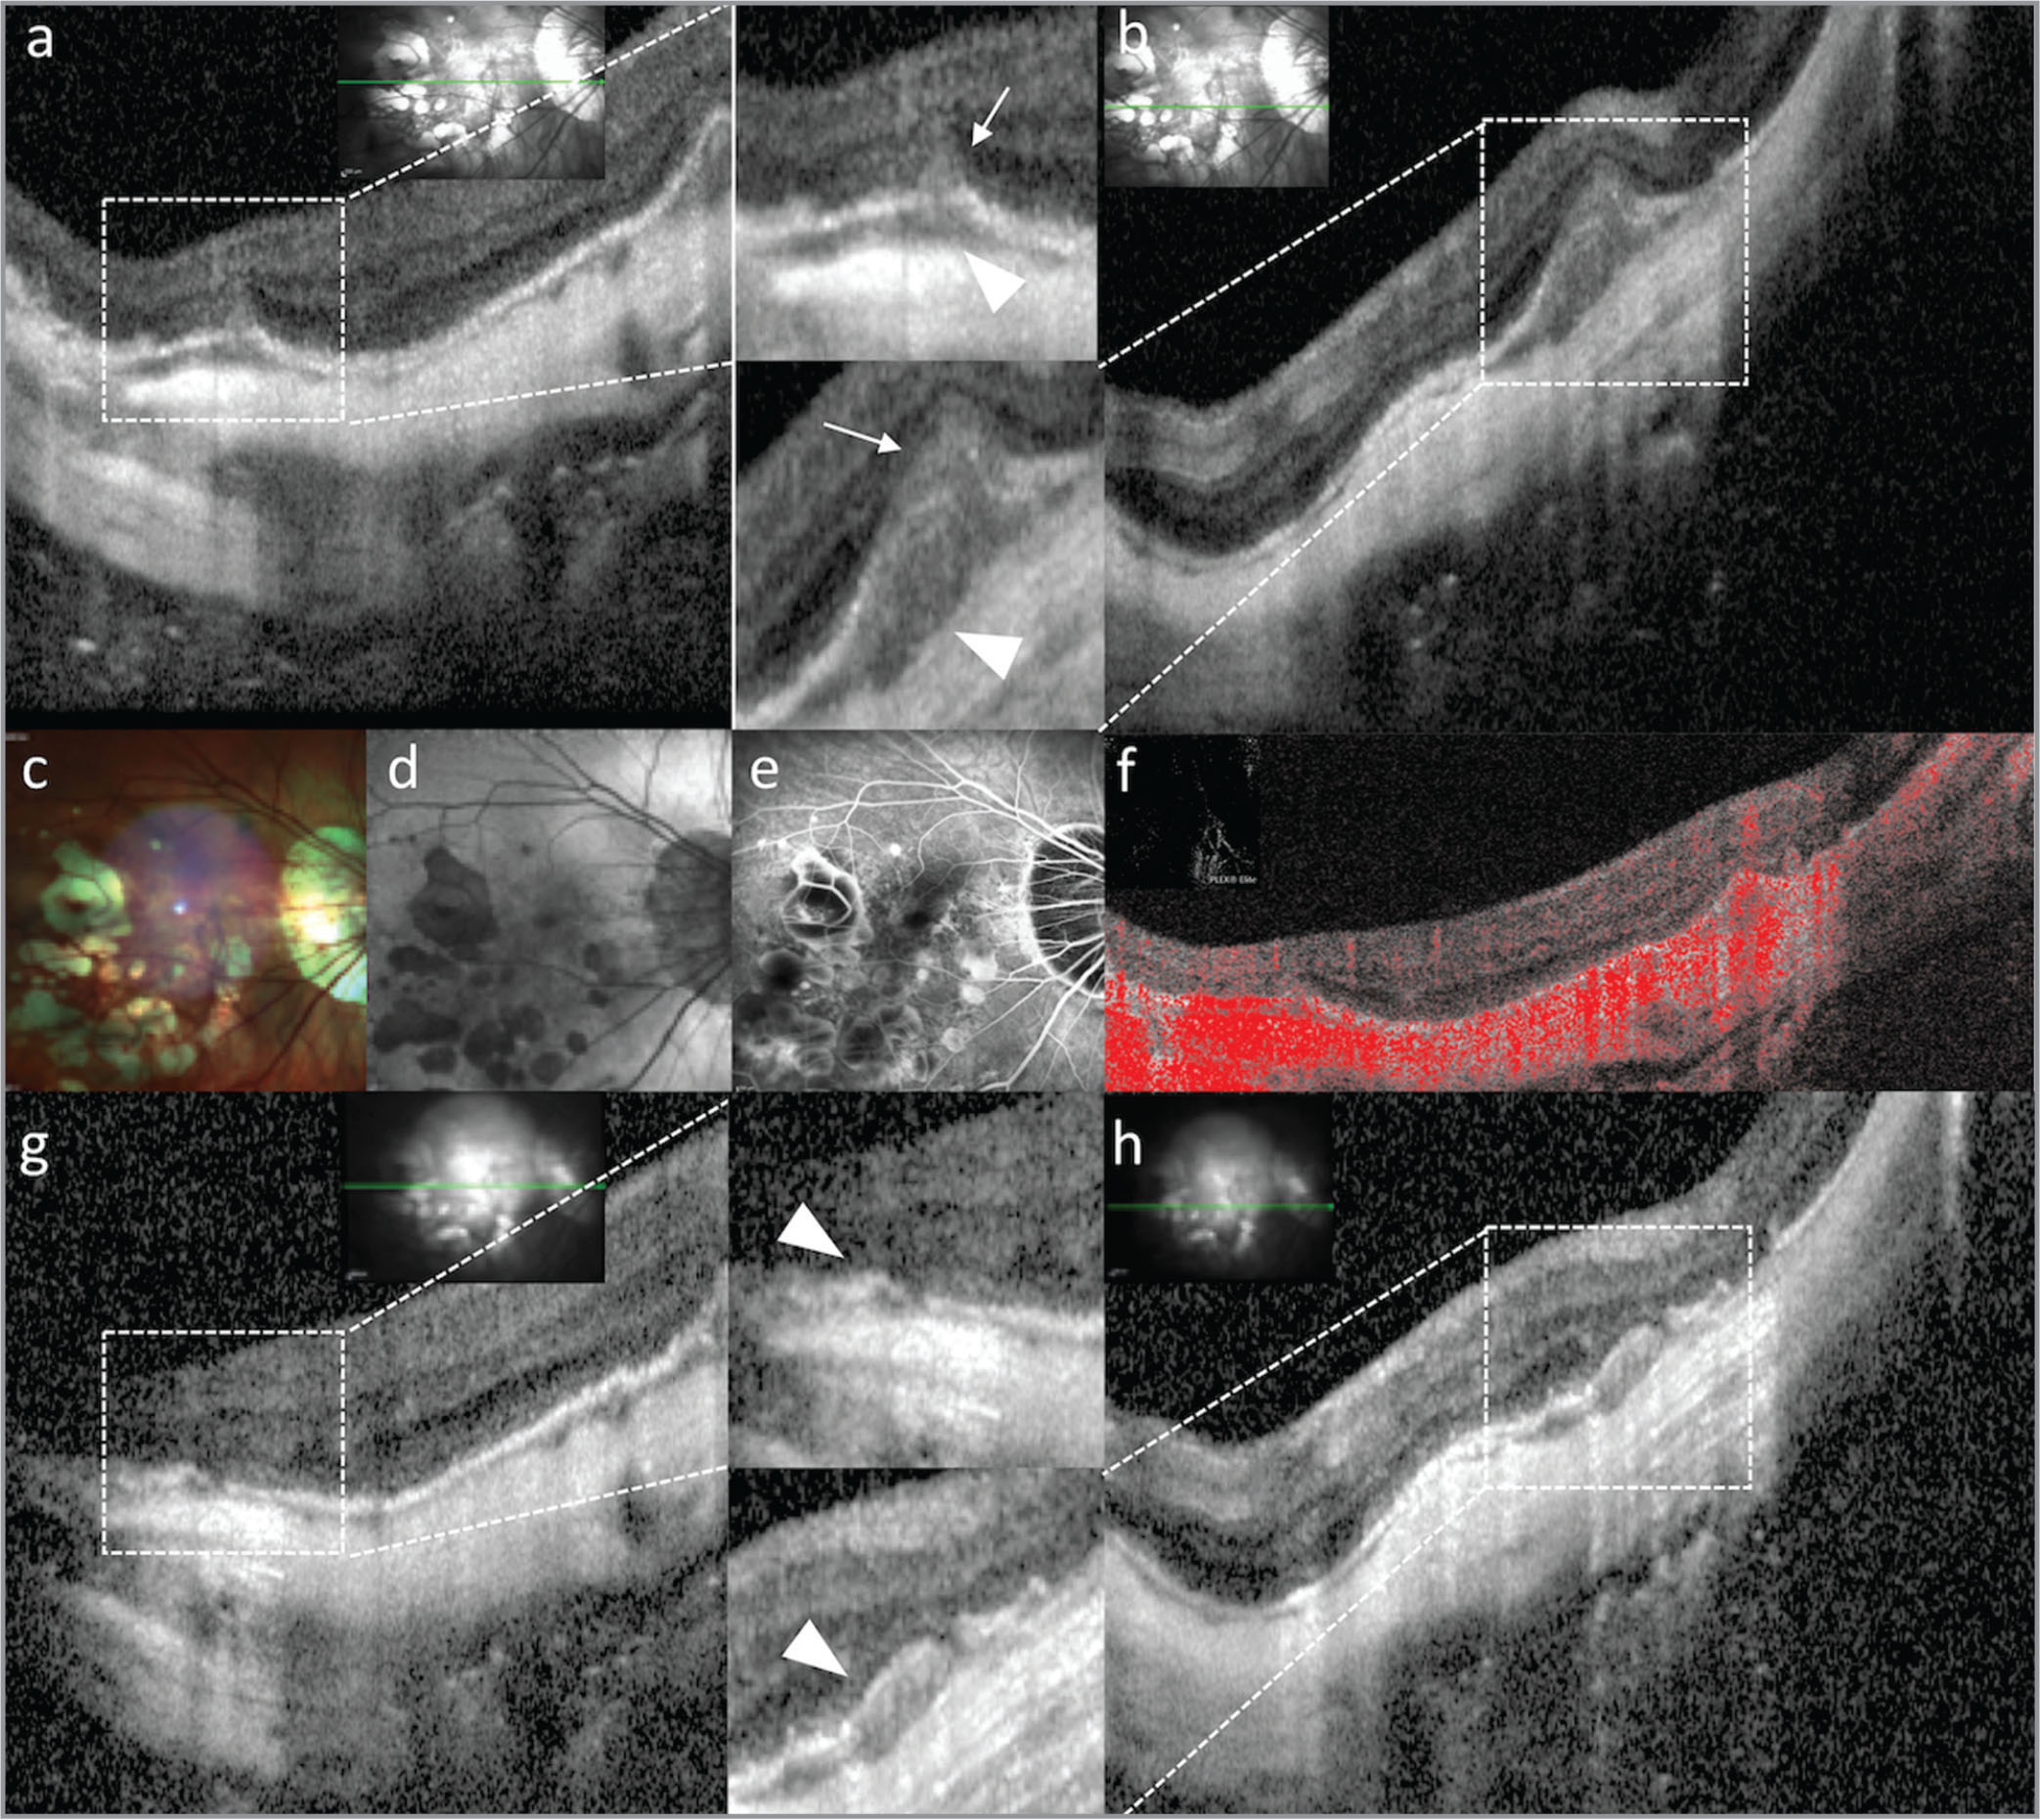 """Multimodal imaging of retinal pigment epithelium (RPE) humps associated with multifocal choroiditis. Structural optical coherence tomography (OCT; a, b) at baseline illustrated multiple RPE humps (arrowheads), some complicated by """"volcano-like"""" apertures of the RPE (arrows). The RPE apertures were associated with vertical hyperreflective material in the outer nuclear layer and in the outer plexiform layer. Multicolor imaging (c) and fundus autofluorescence (d) revealed multiple patchy areas of RPE atrophy and lacquer cracks; fluorescein angiography (e) showed hyperfluorescence due to window effect or late staining, and minimal leakage of the dye corresponding to the RPE lesions. OCT angiography (f) excluded the presence of associated choroidal neovascularization. One month after treatment with systemic prednisone, OCT (g, h) showed resolution of the inflammatory lesions over the RPE humps (arrowheads) and reduction of choroidal thickness."""